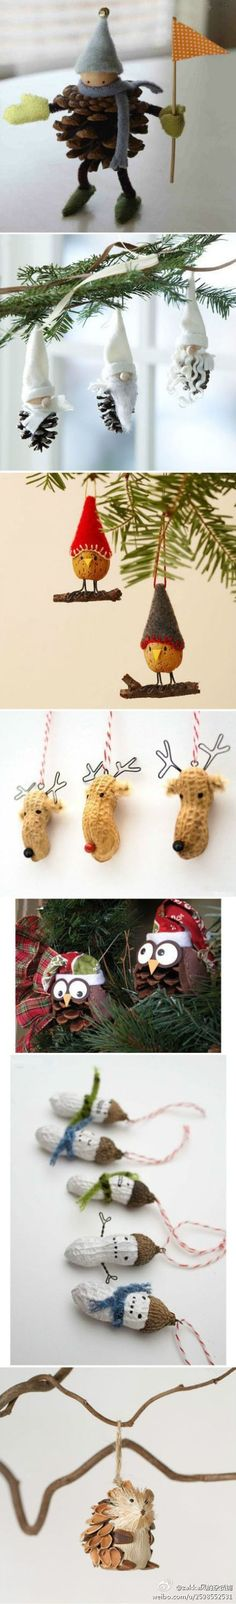 Ideas for Christmas                                                                                                                                                     More